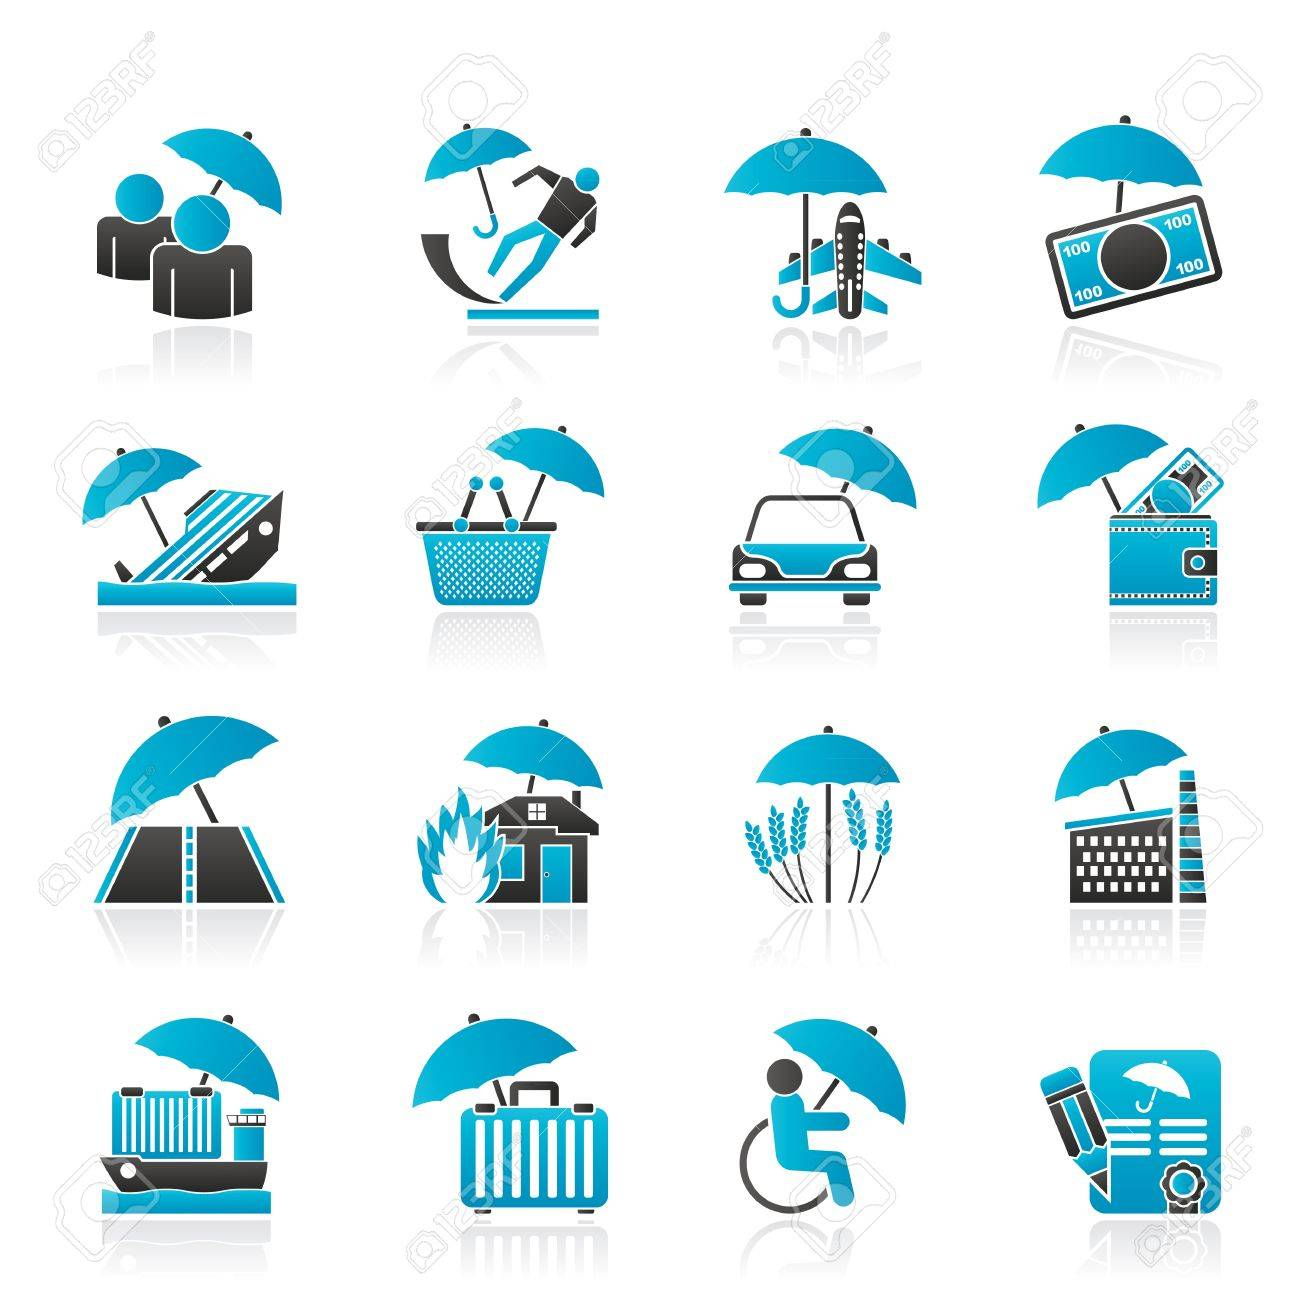 risk and business icons - icon set Stock Vector - 19380242